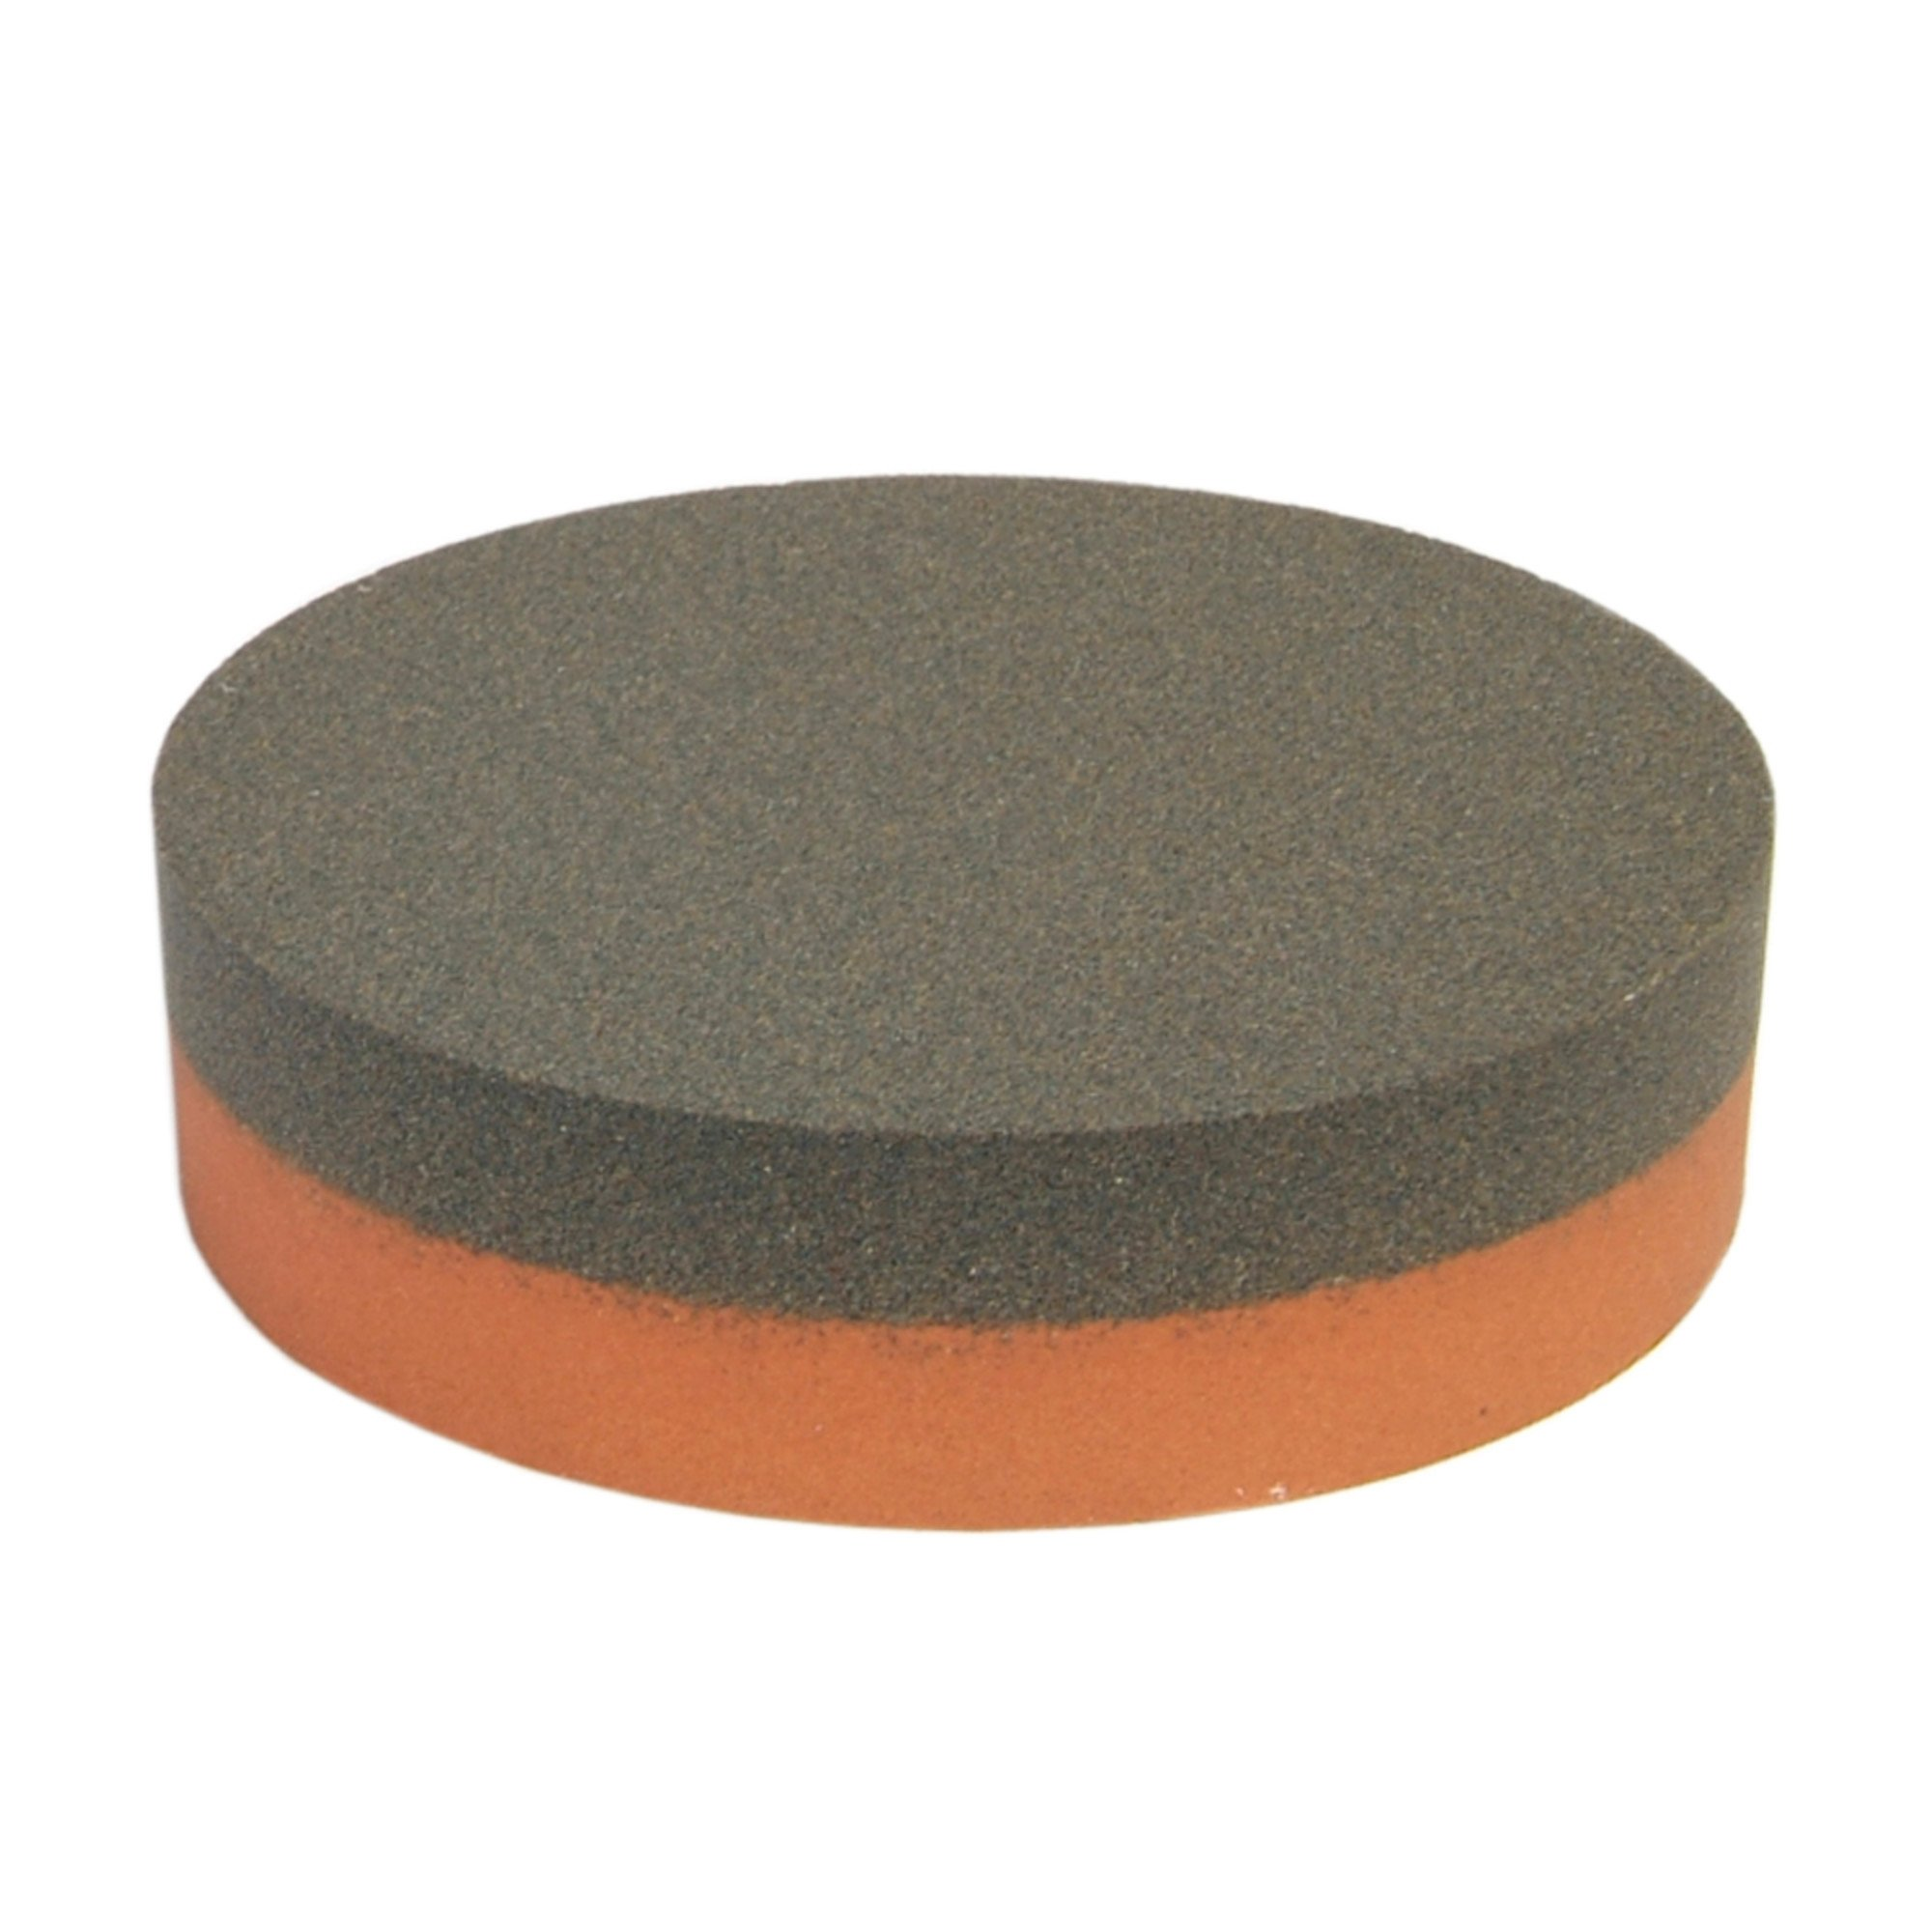 Norton Combination Grit Abrasive Benchstone, Aluminum Oxide, 1'' Diameter, 4'' Length (Pack of 5)